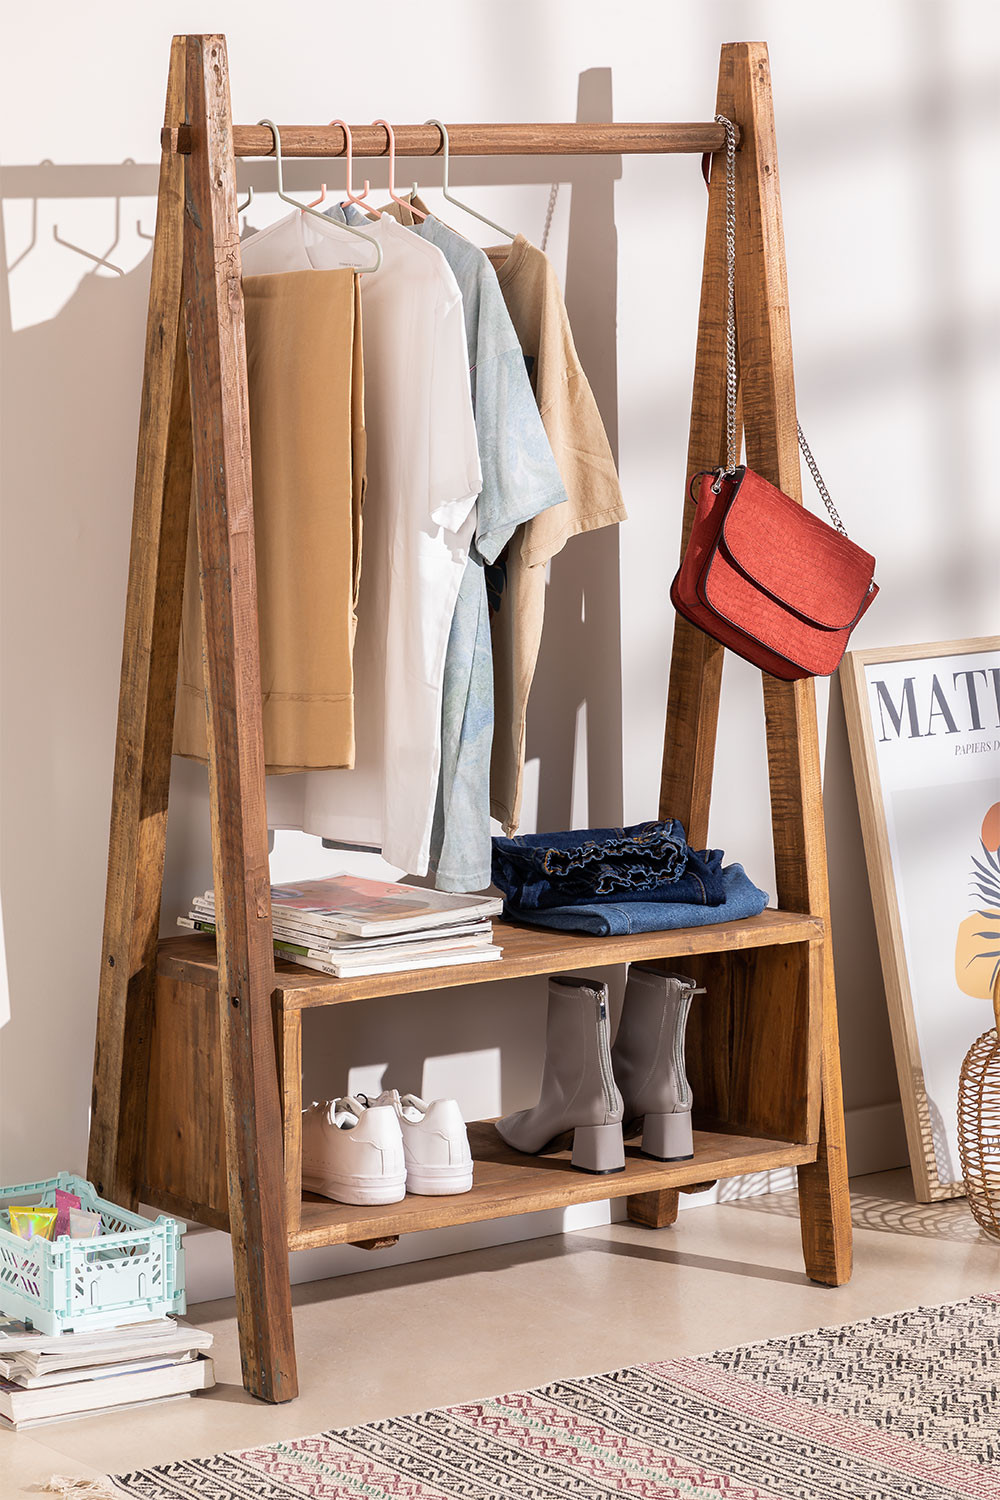 Recycled Wooden Coat Rack Arcieh, gallery image 1